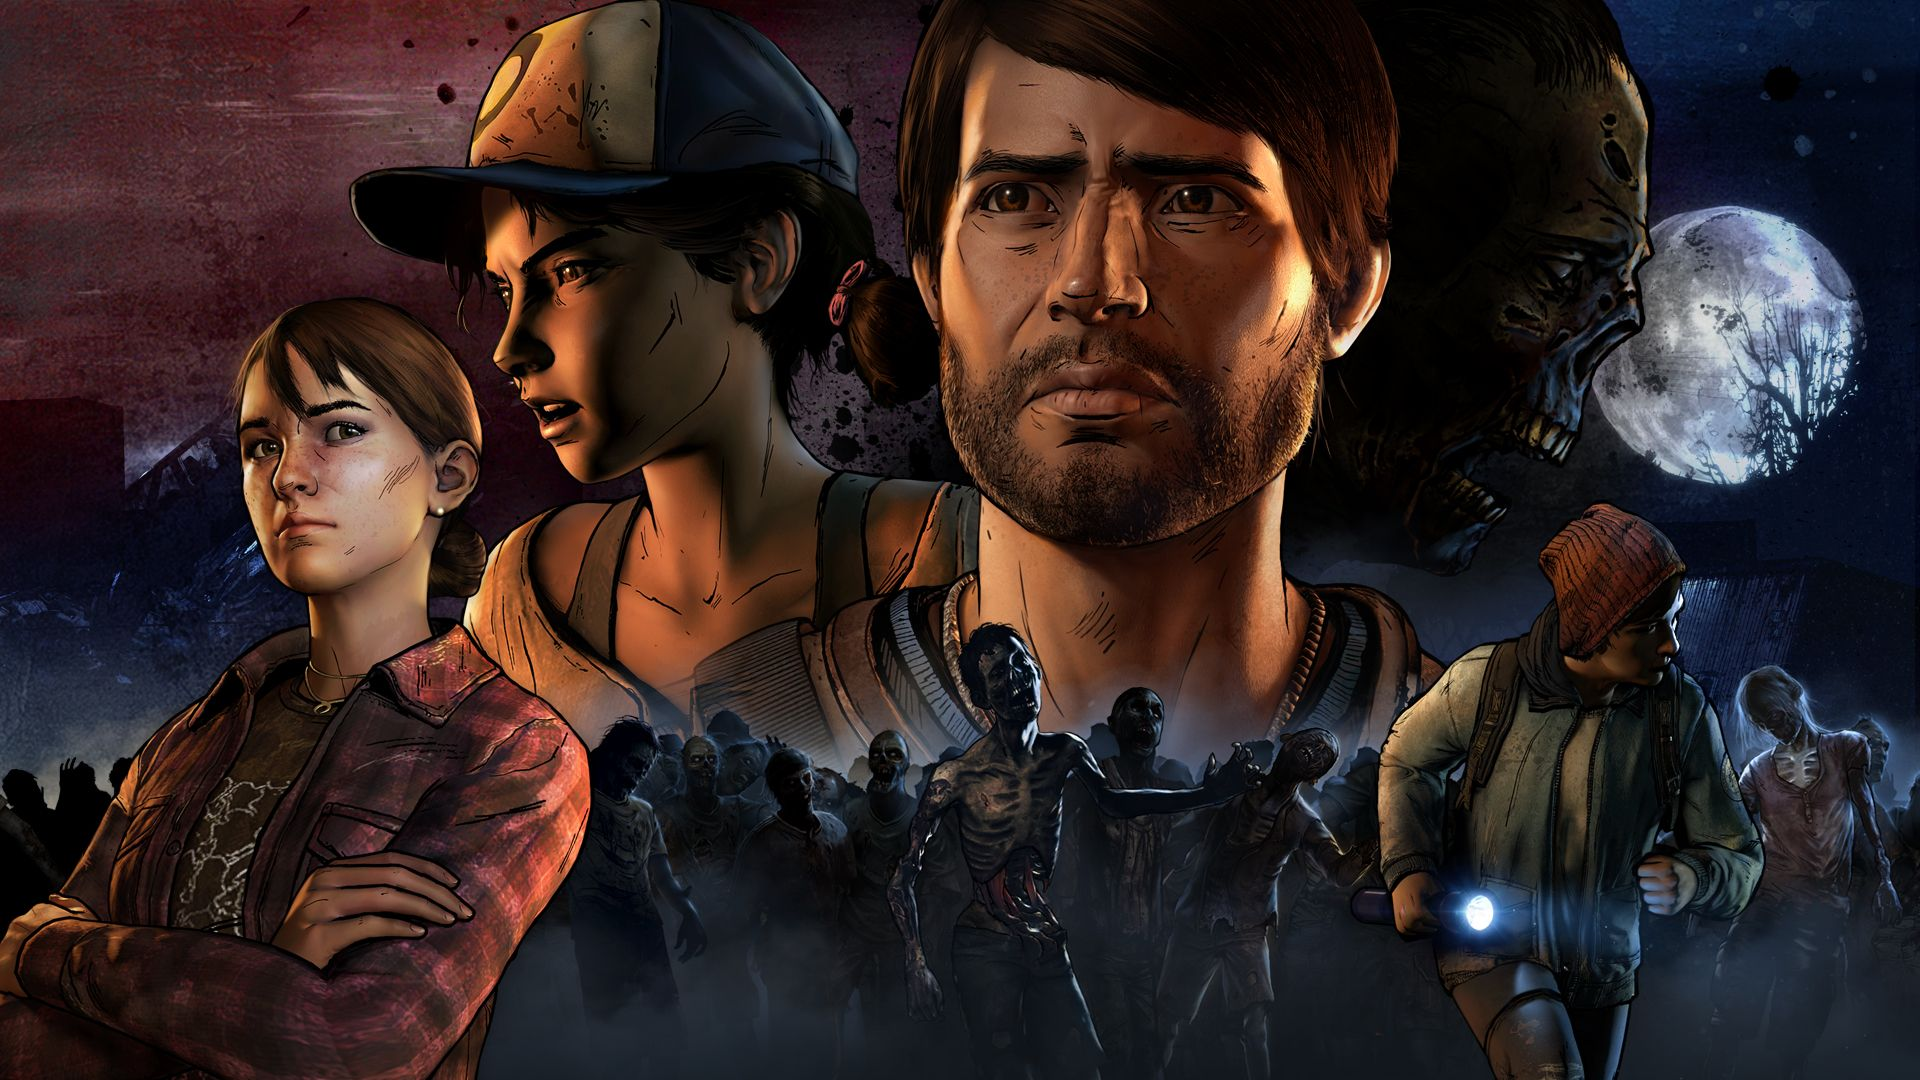 The Walking Dead: The Telltale Series – A New Frontier' Debuts Today in Two Part Premiere